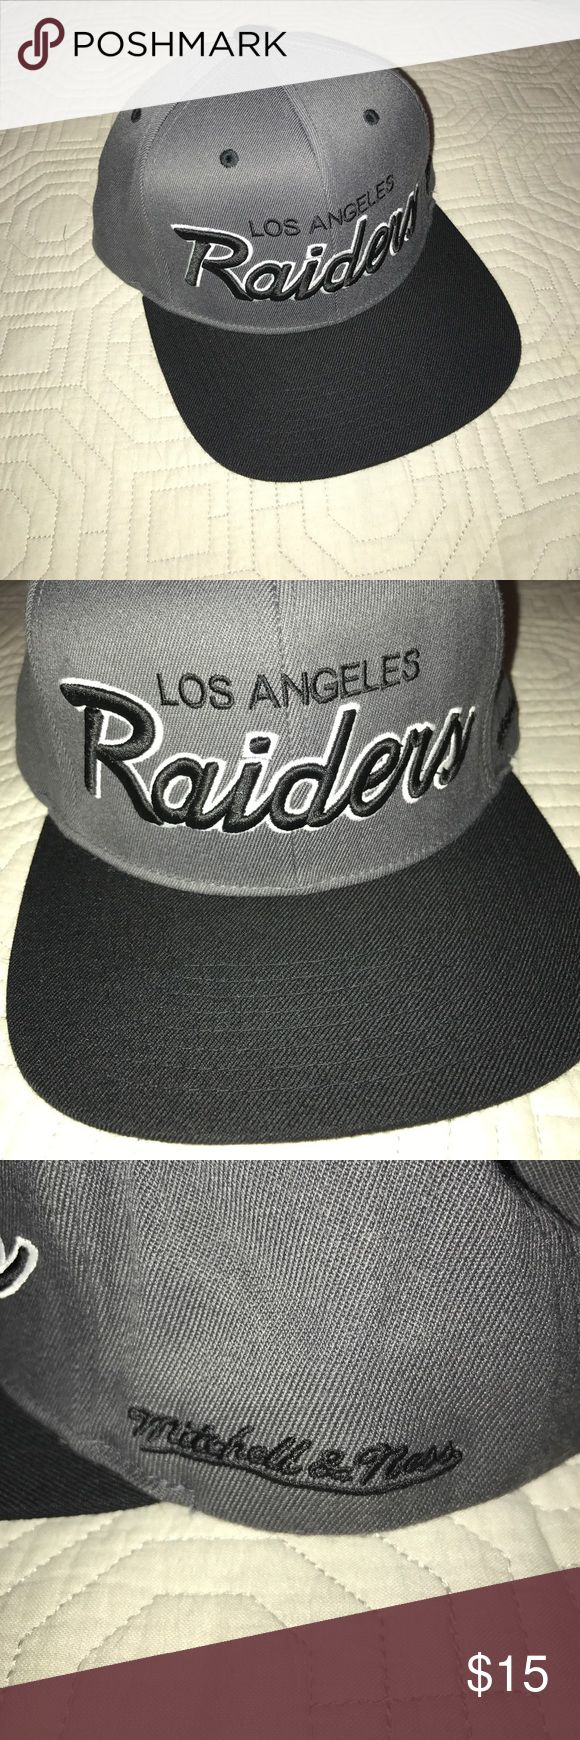 Vintage Mitchell & Ness LosAngeles Raiders Hat NFL Vintage Mitchell & Ness Los Angeles Raiders Hat. Worn twice, No ware and tear. 10/10 condition Mitchell & Ness Accessories Hats